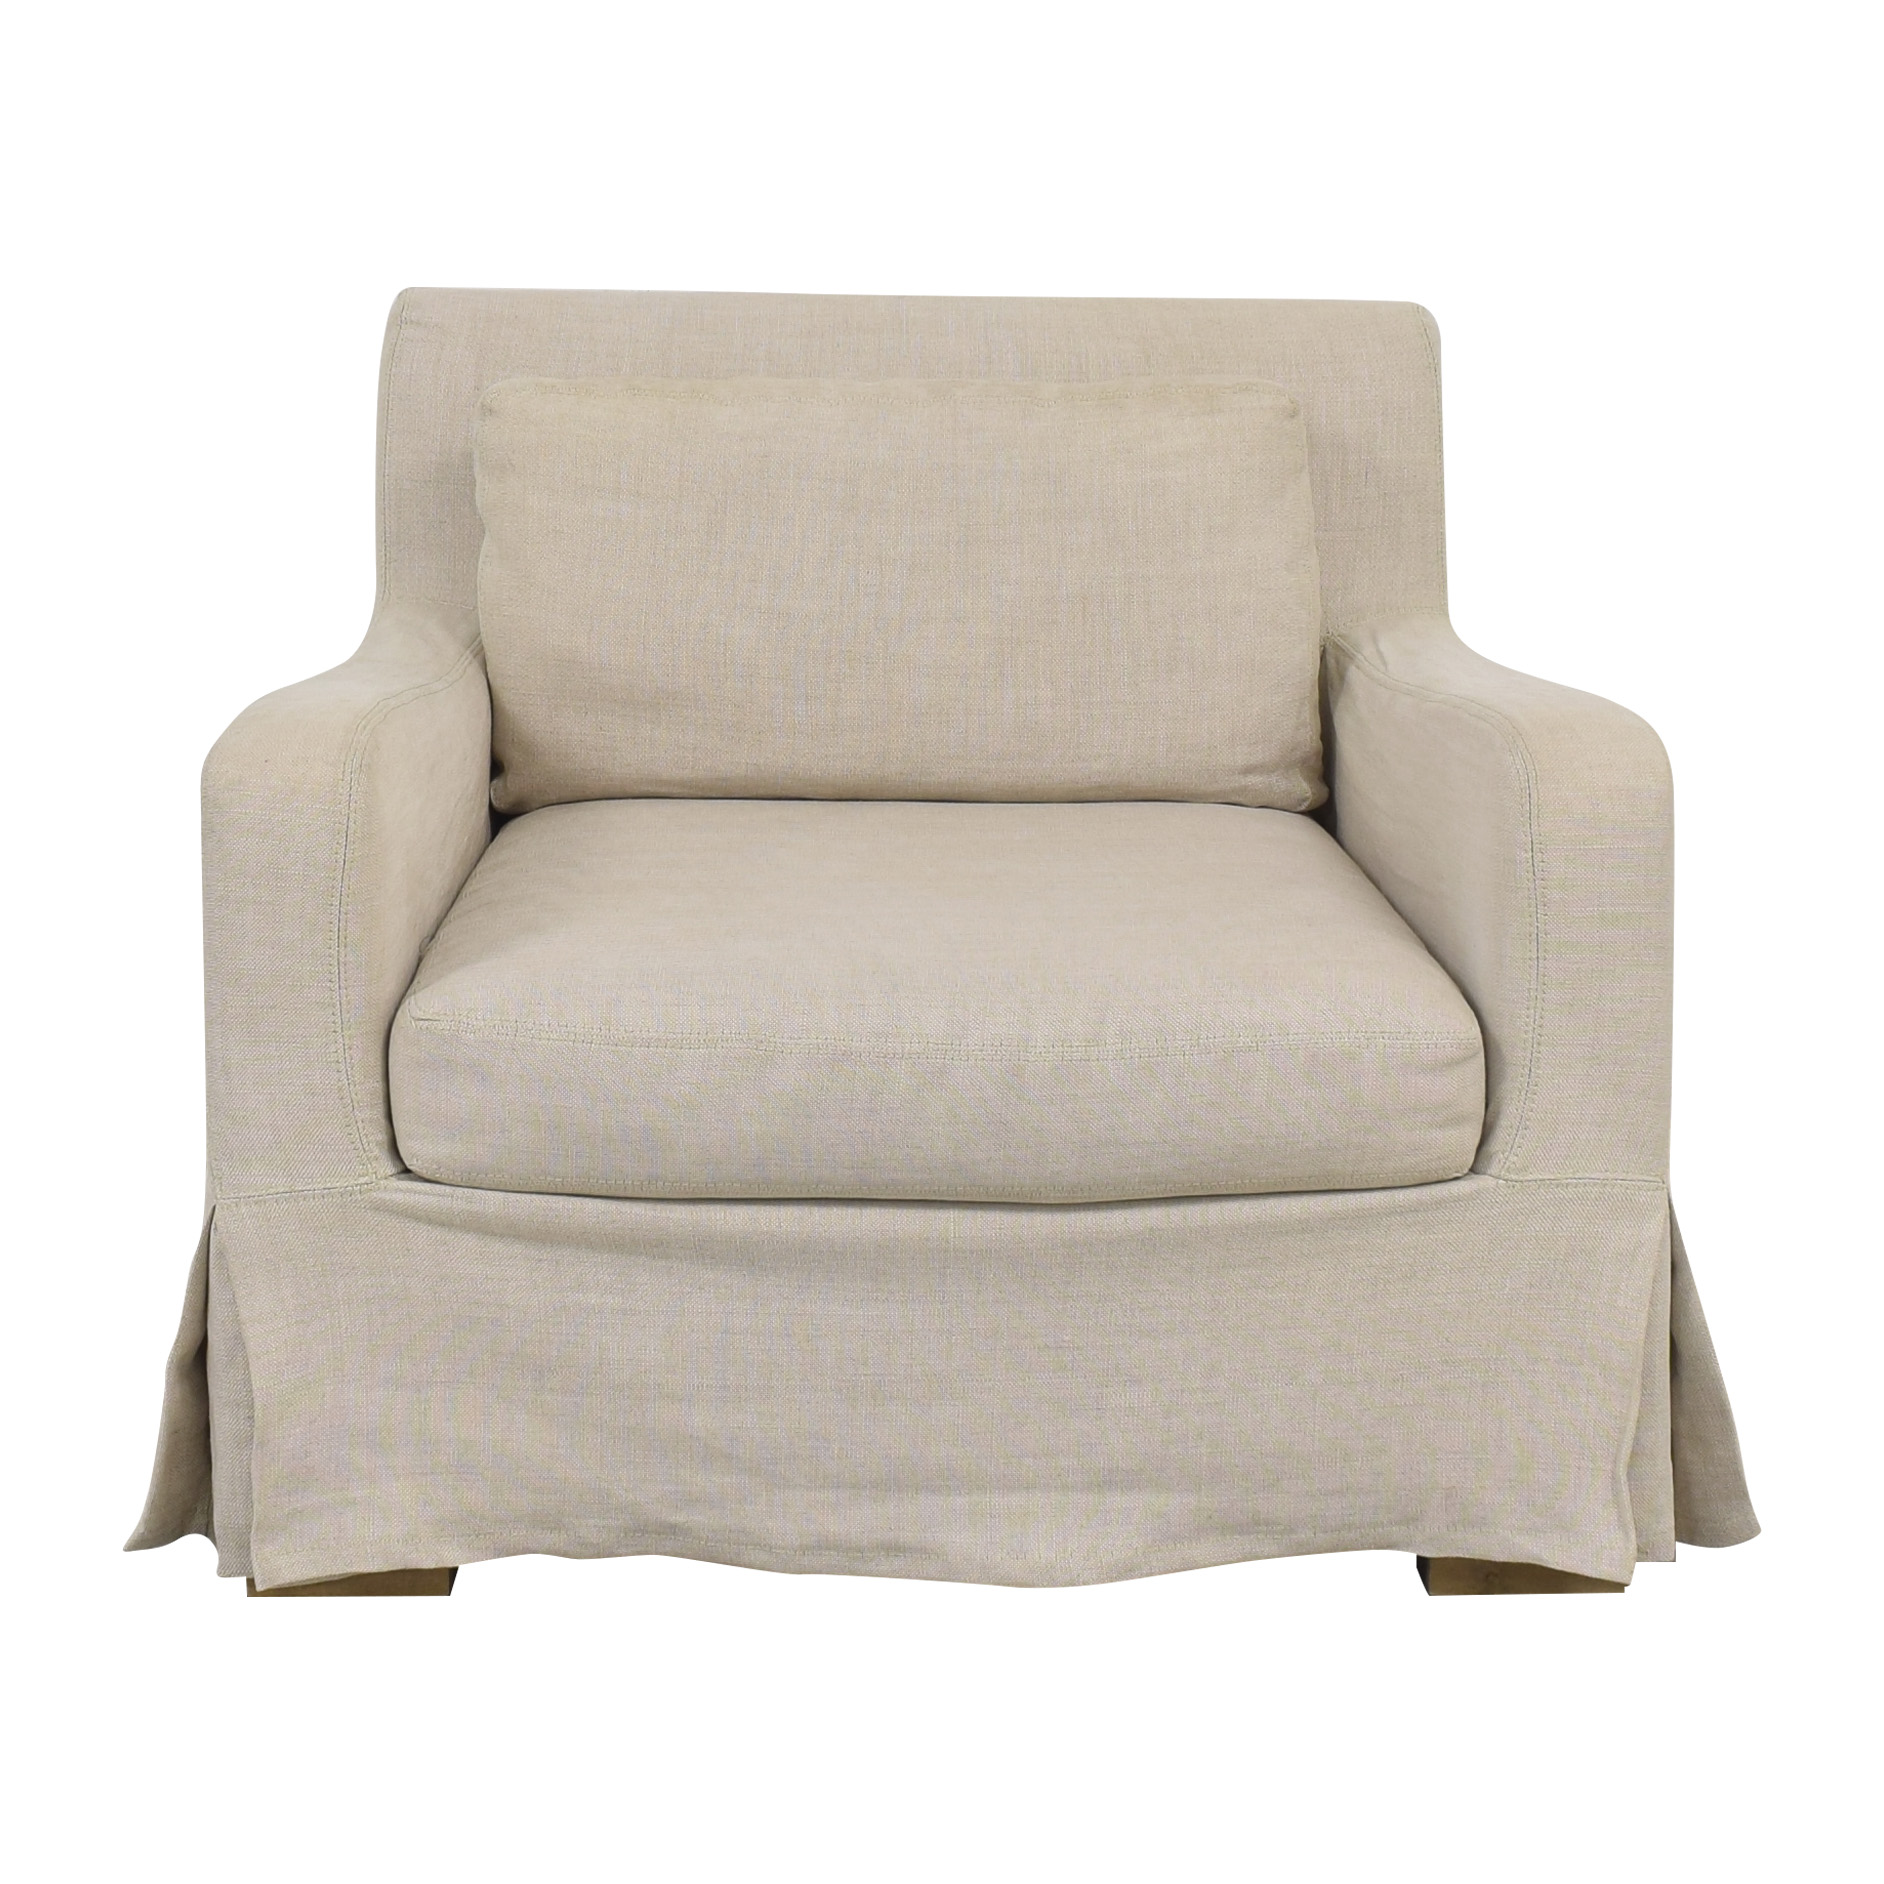 Restoration Hardware Restoration Hardware Belgian Slope Arm Slipcovered Chair pa